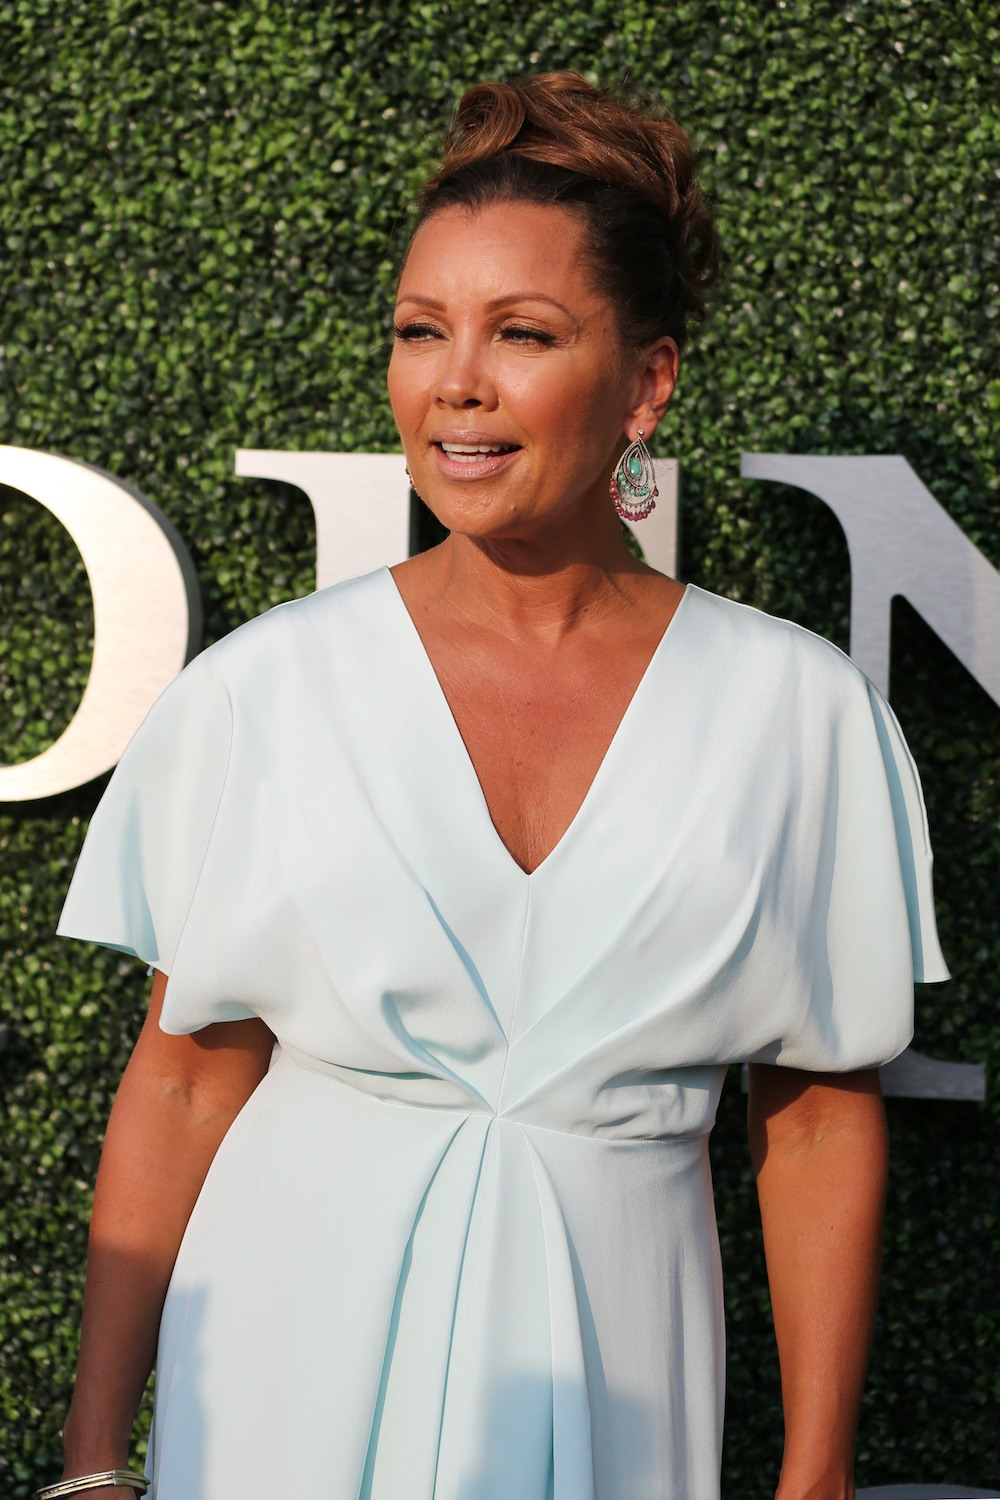 Vanessa-williams dengan warna rambut cokelat medium.